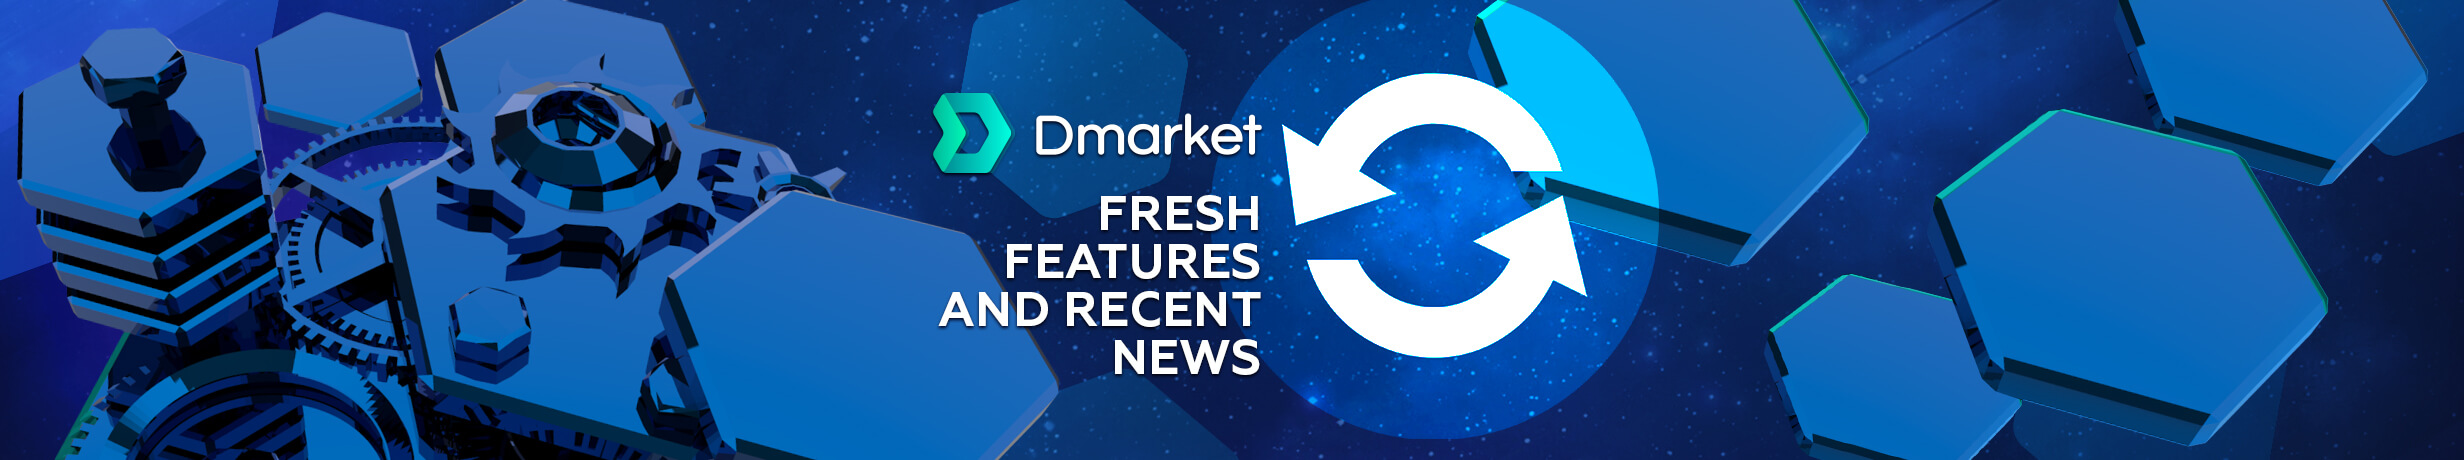 DMarket Update: Fresh Features and Recent News